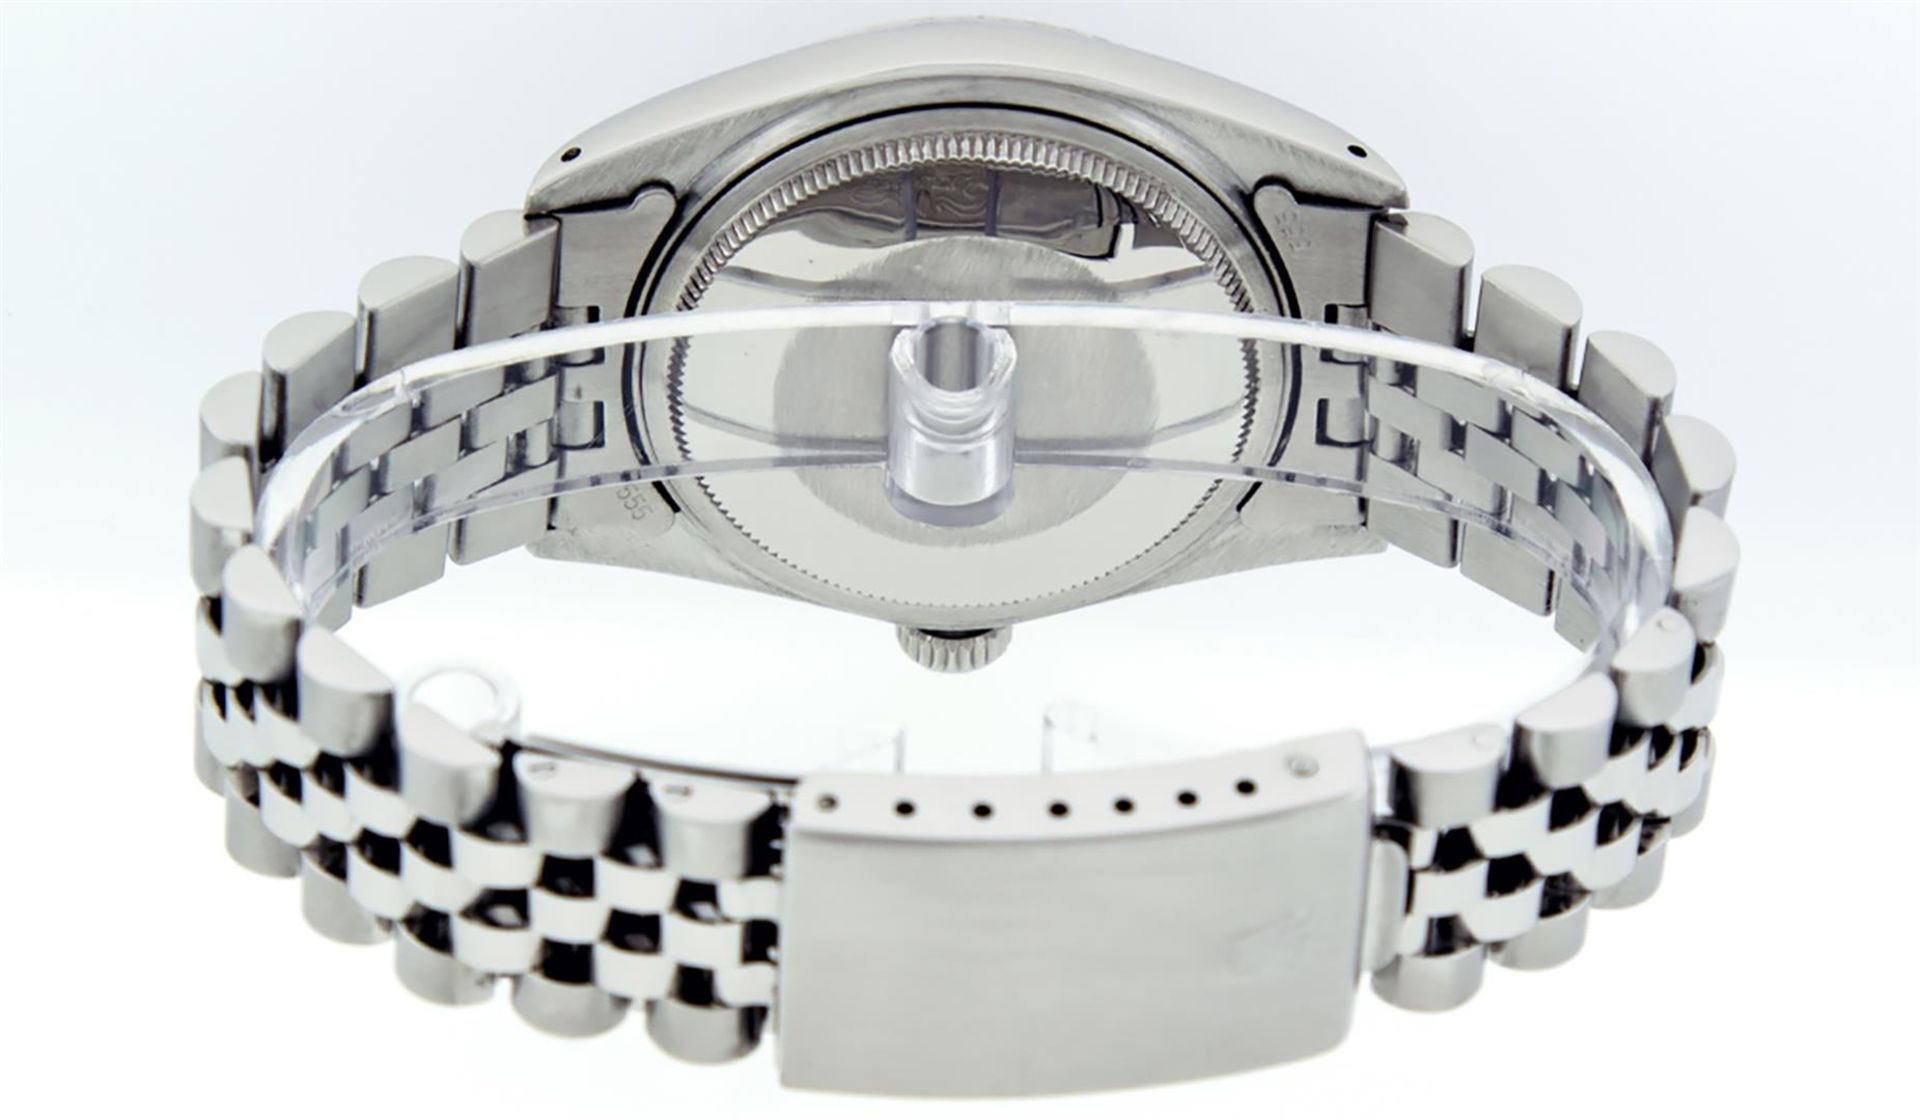 Rolex Mens Stainless Steel Mother Of Pearl Diamond & Sapphire Datejust Wristwatc - Image 7 of 8